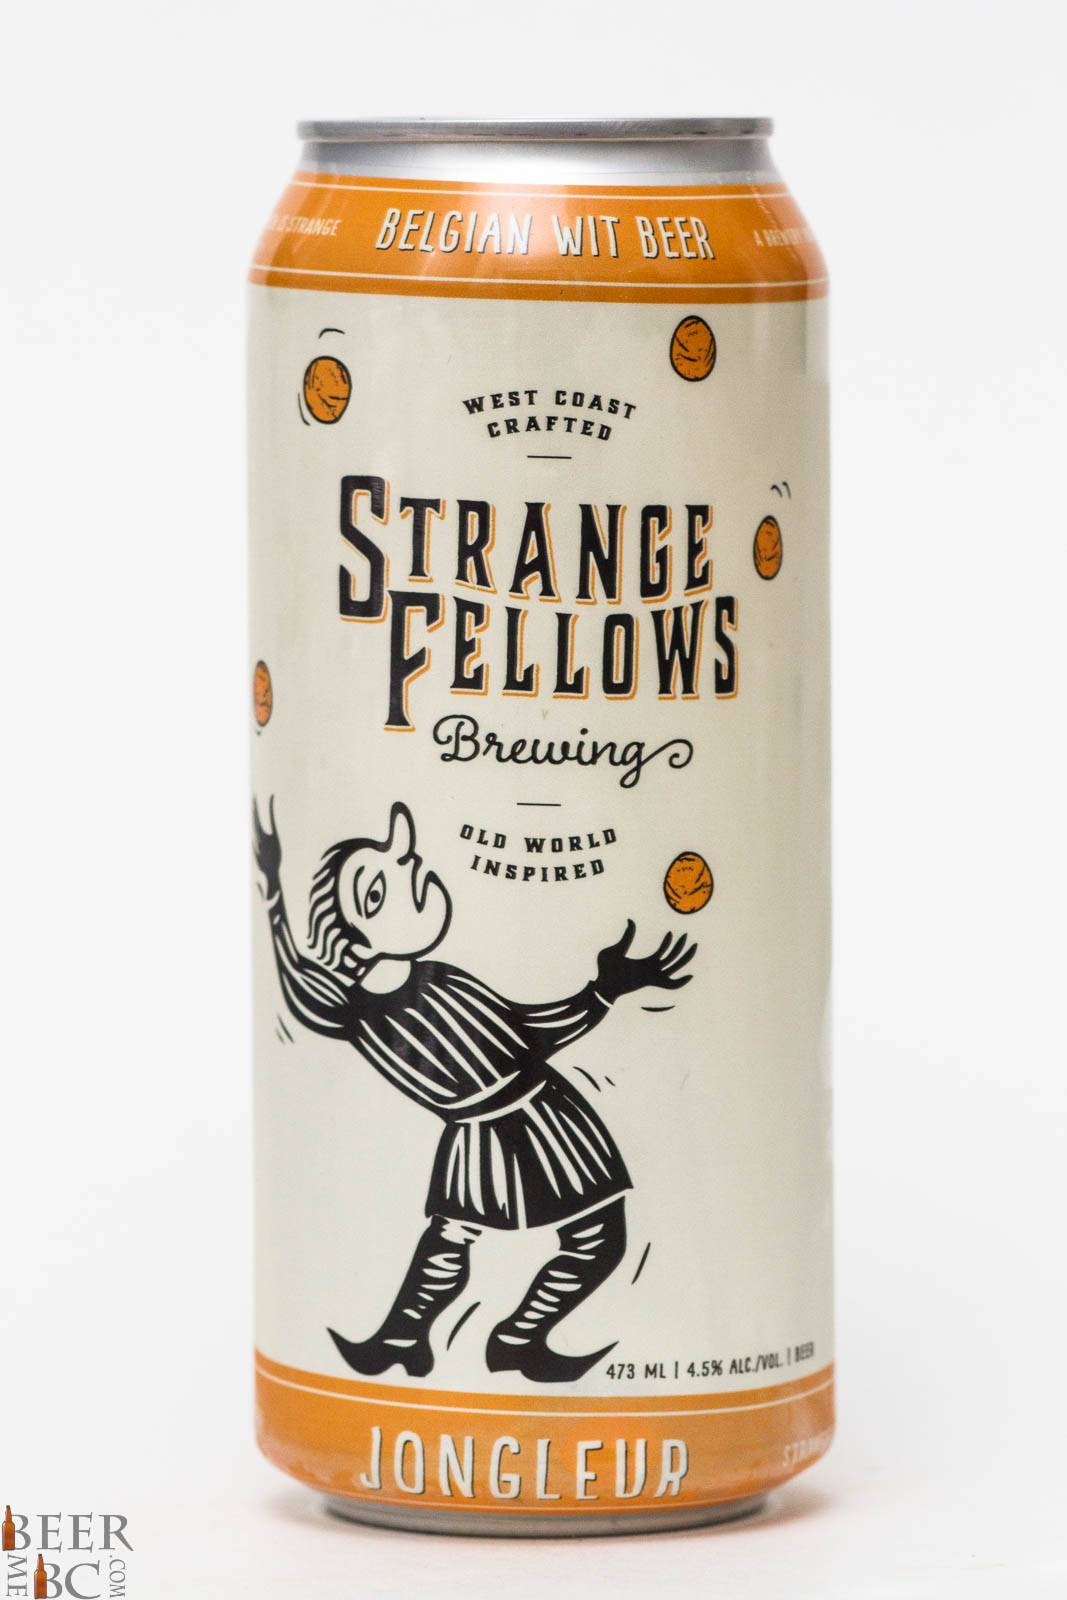 Strange fellows brewing co jongleur belgian wit beer for Strange craft beer company